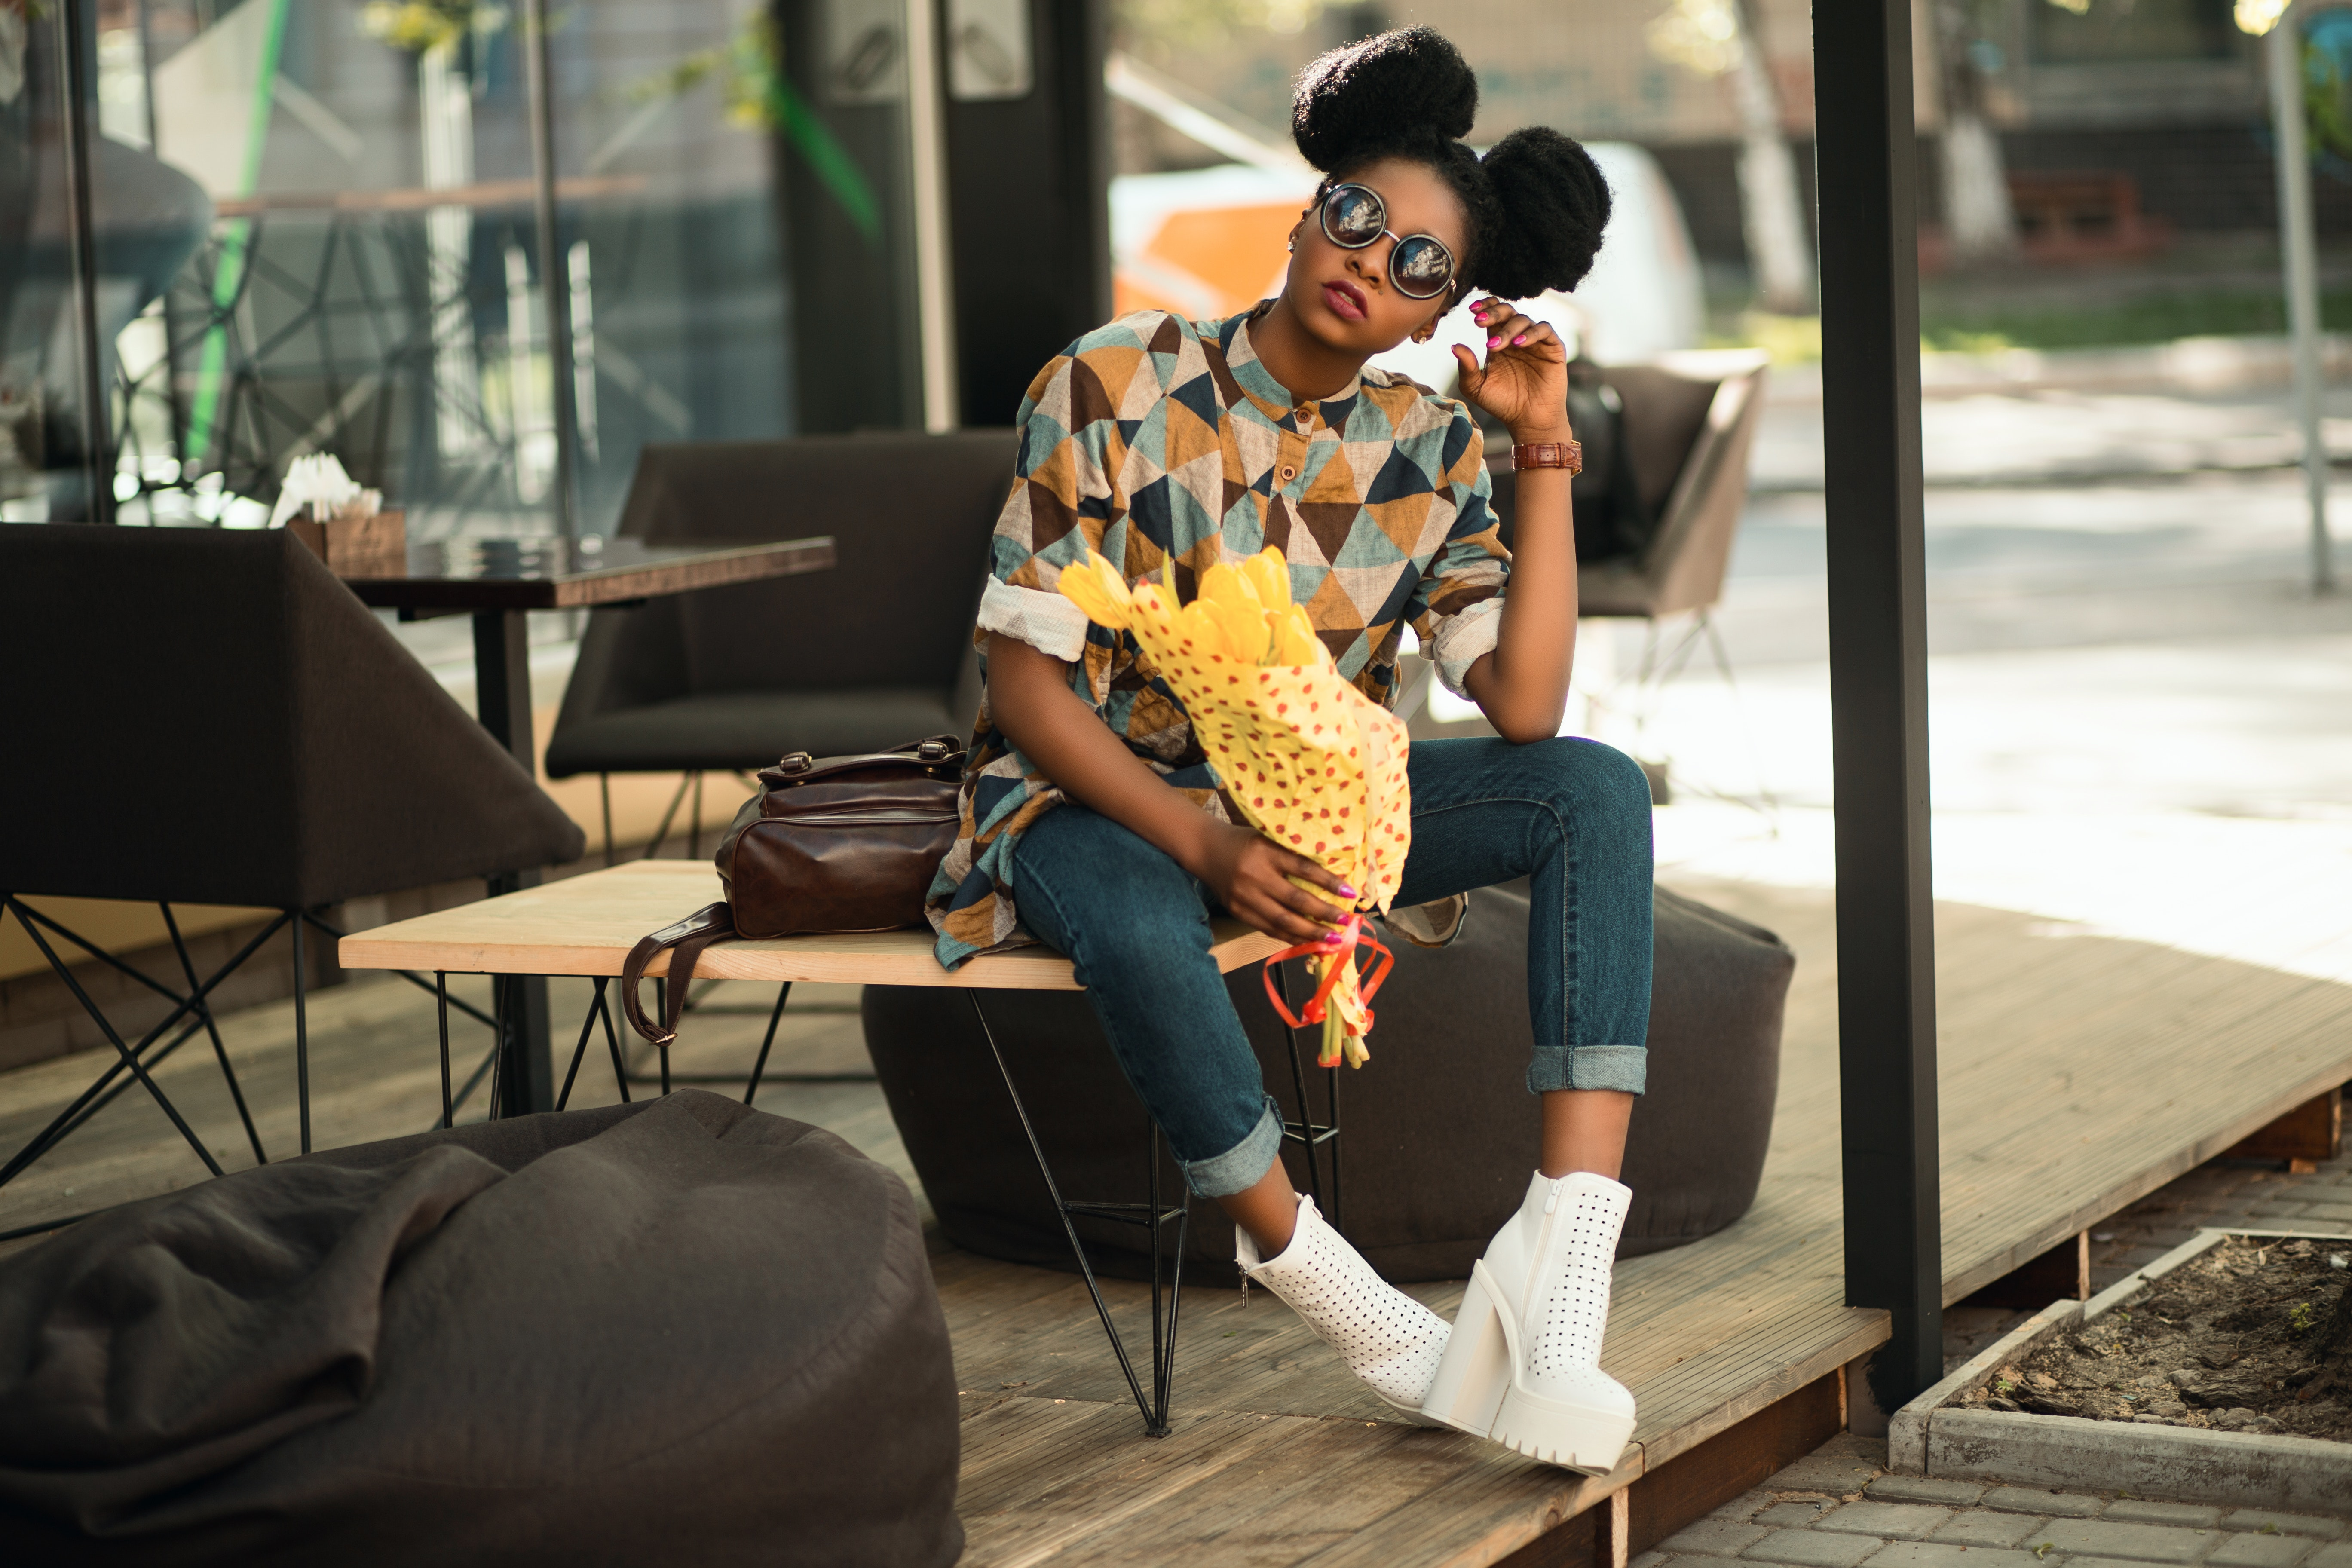 Woman in Brown and Gray T-shirt Sitting on Brown Wooden Table, Bag, Outfit, Yellow, Wood, HQ Photo